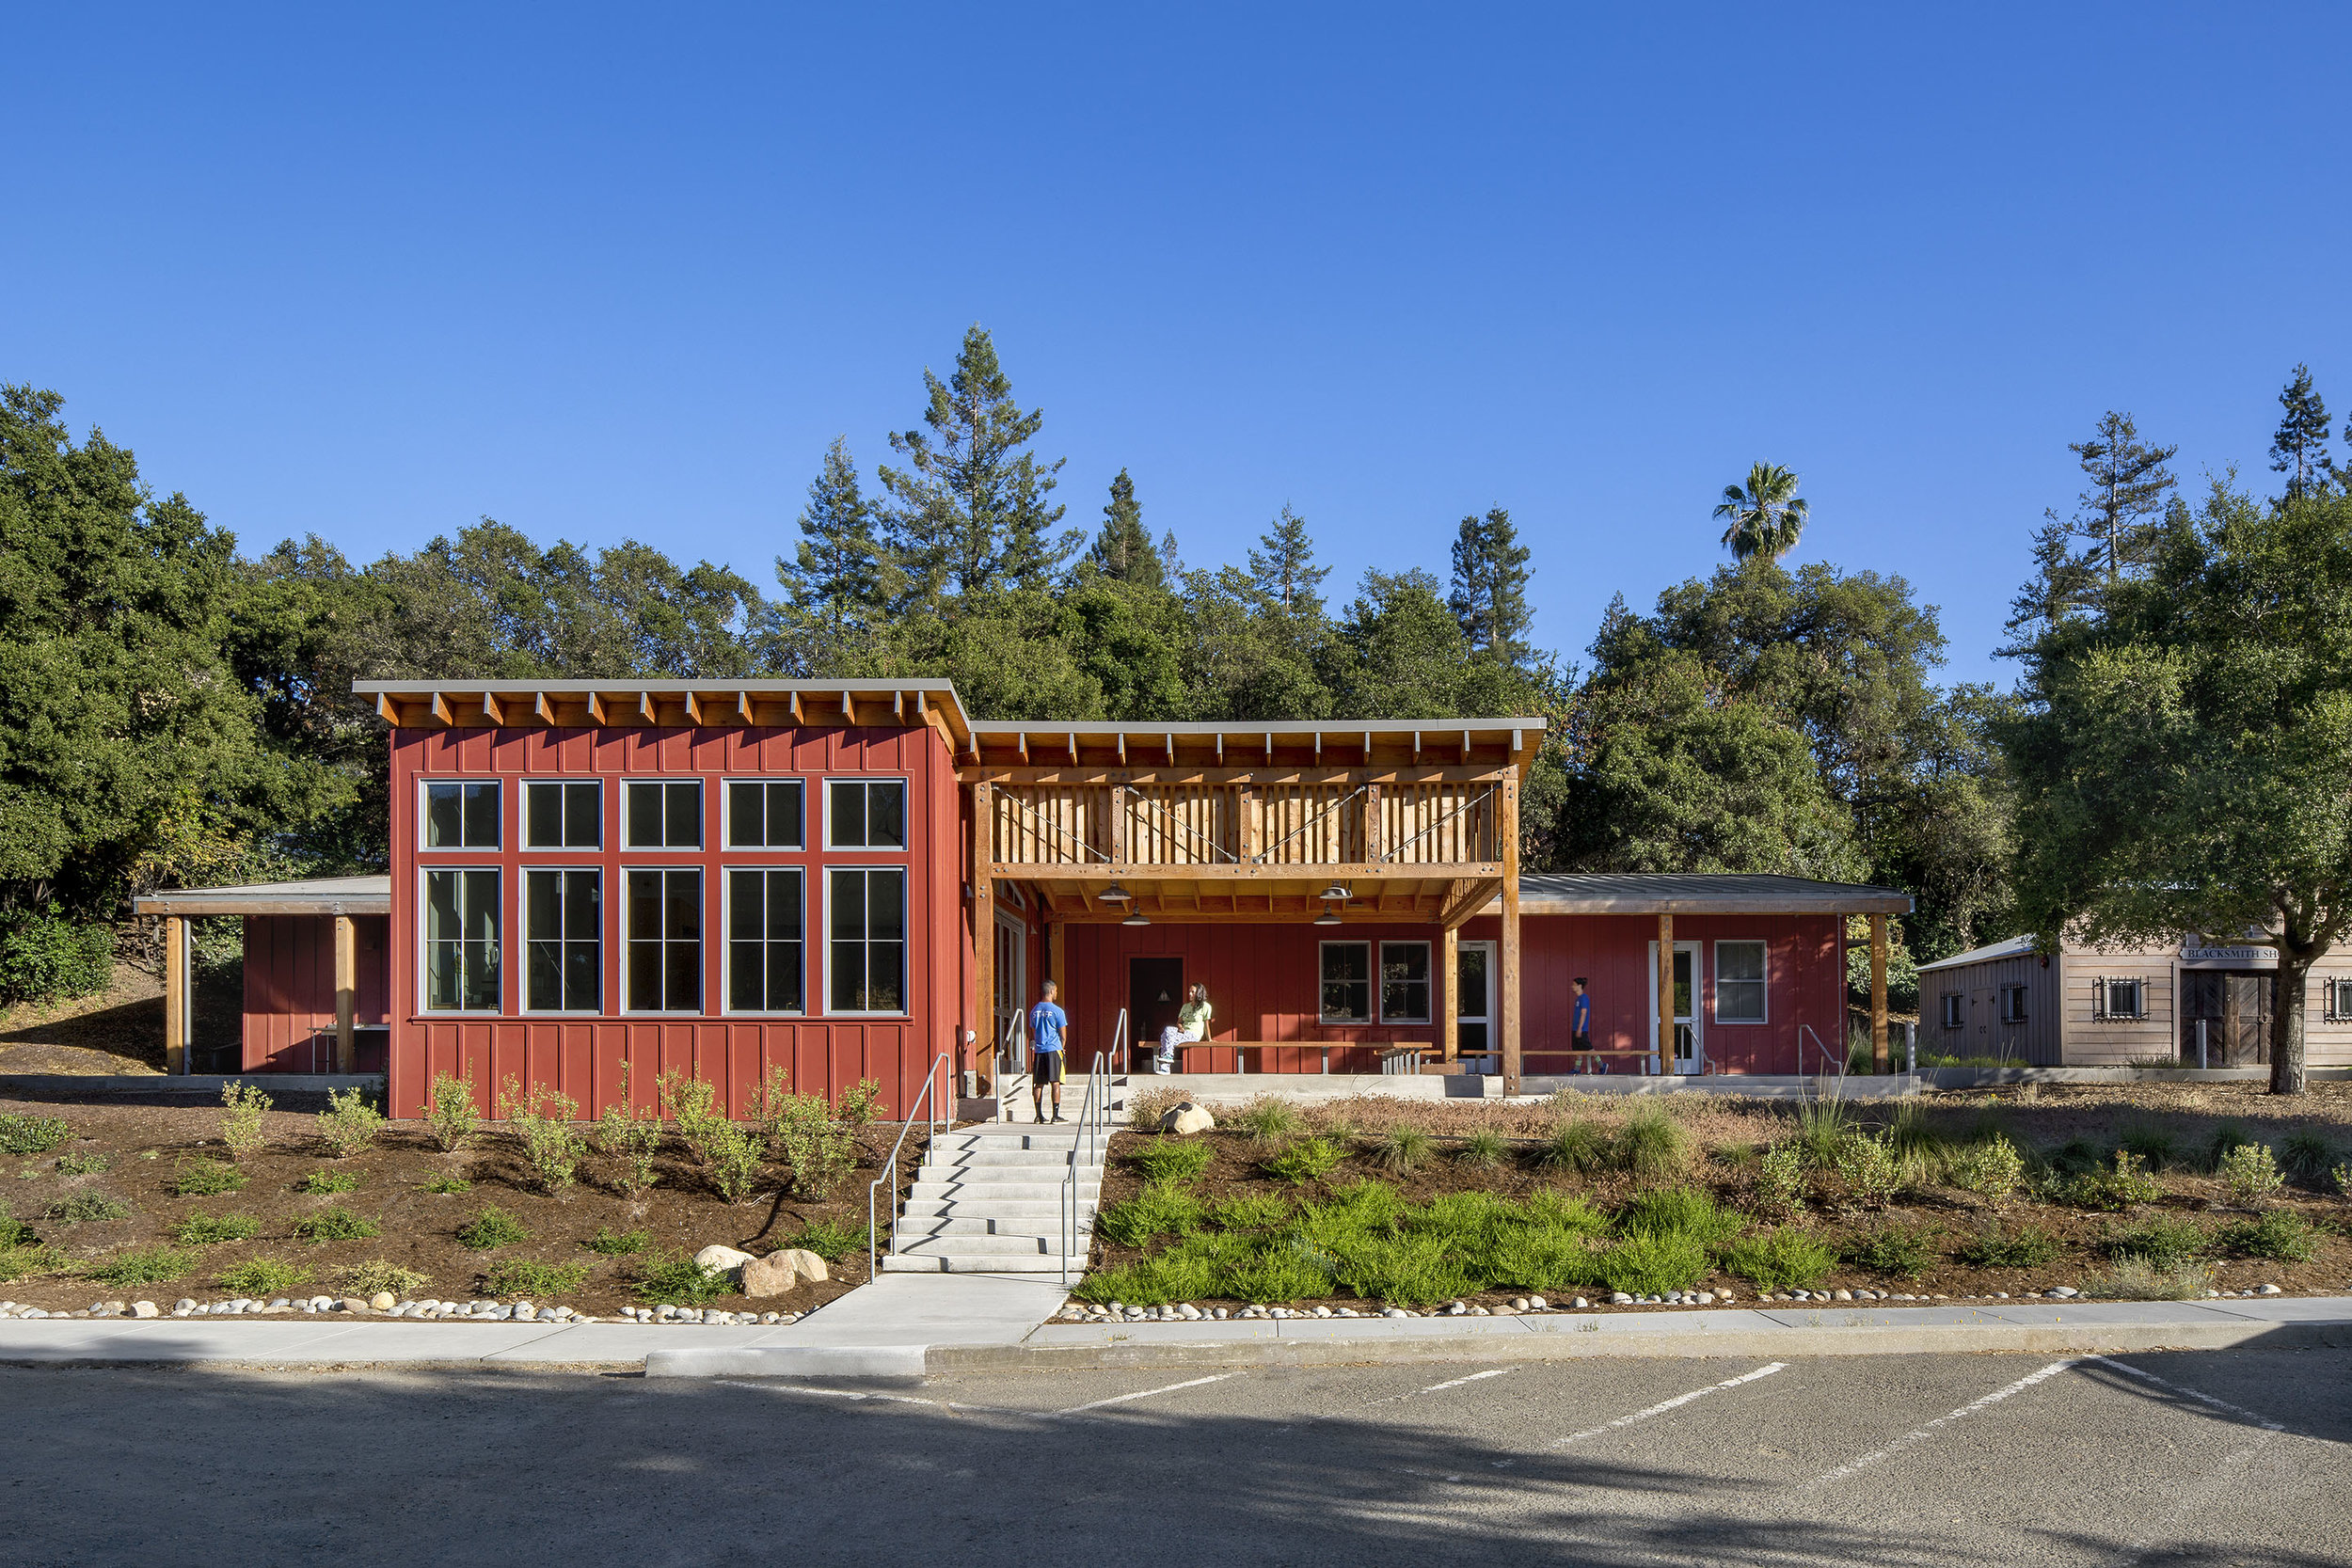 Client: City of Cupertino Architect (Prime): Siegel & Strain Architects Engineer: Ware Associates Photos: David Wakely